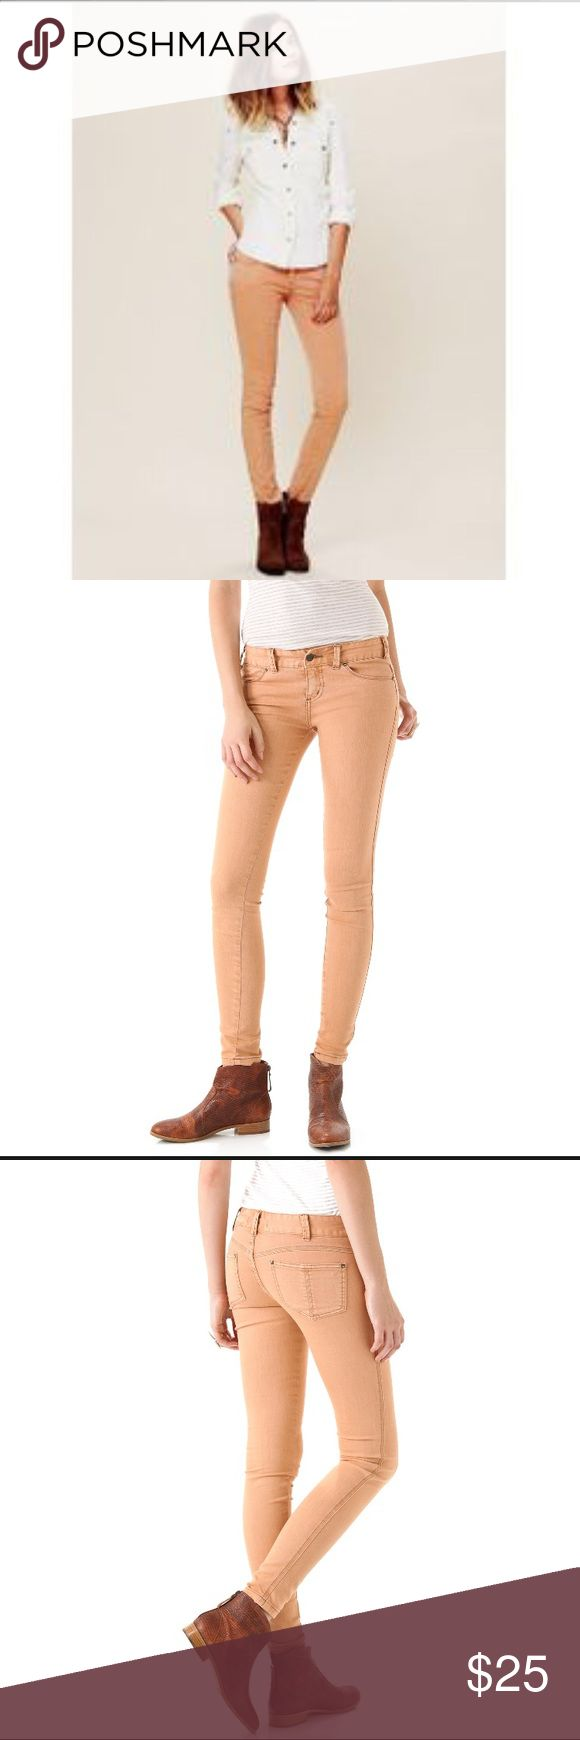 Free People Millennium Colored skinny jeans Free People Millennium Colored skinny jeans in peach/pink Free People Jeans Skinny